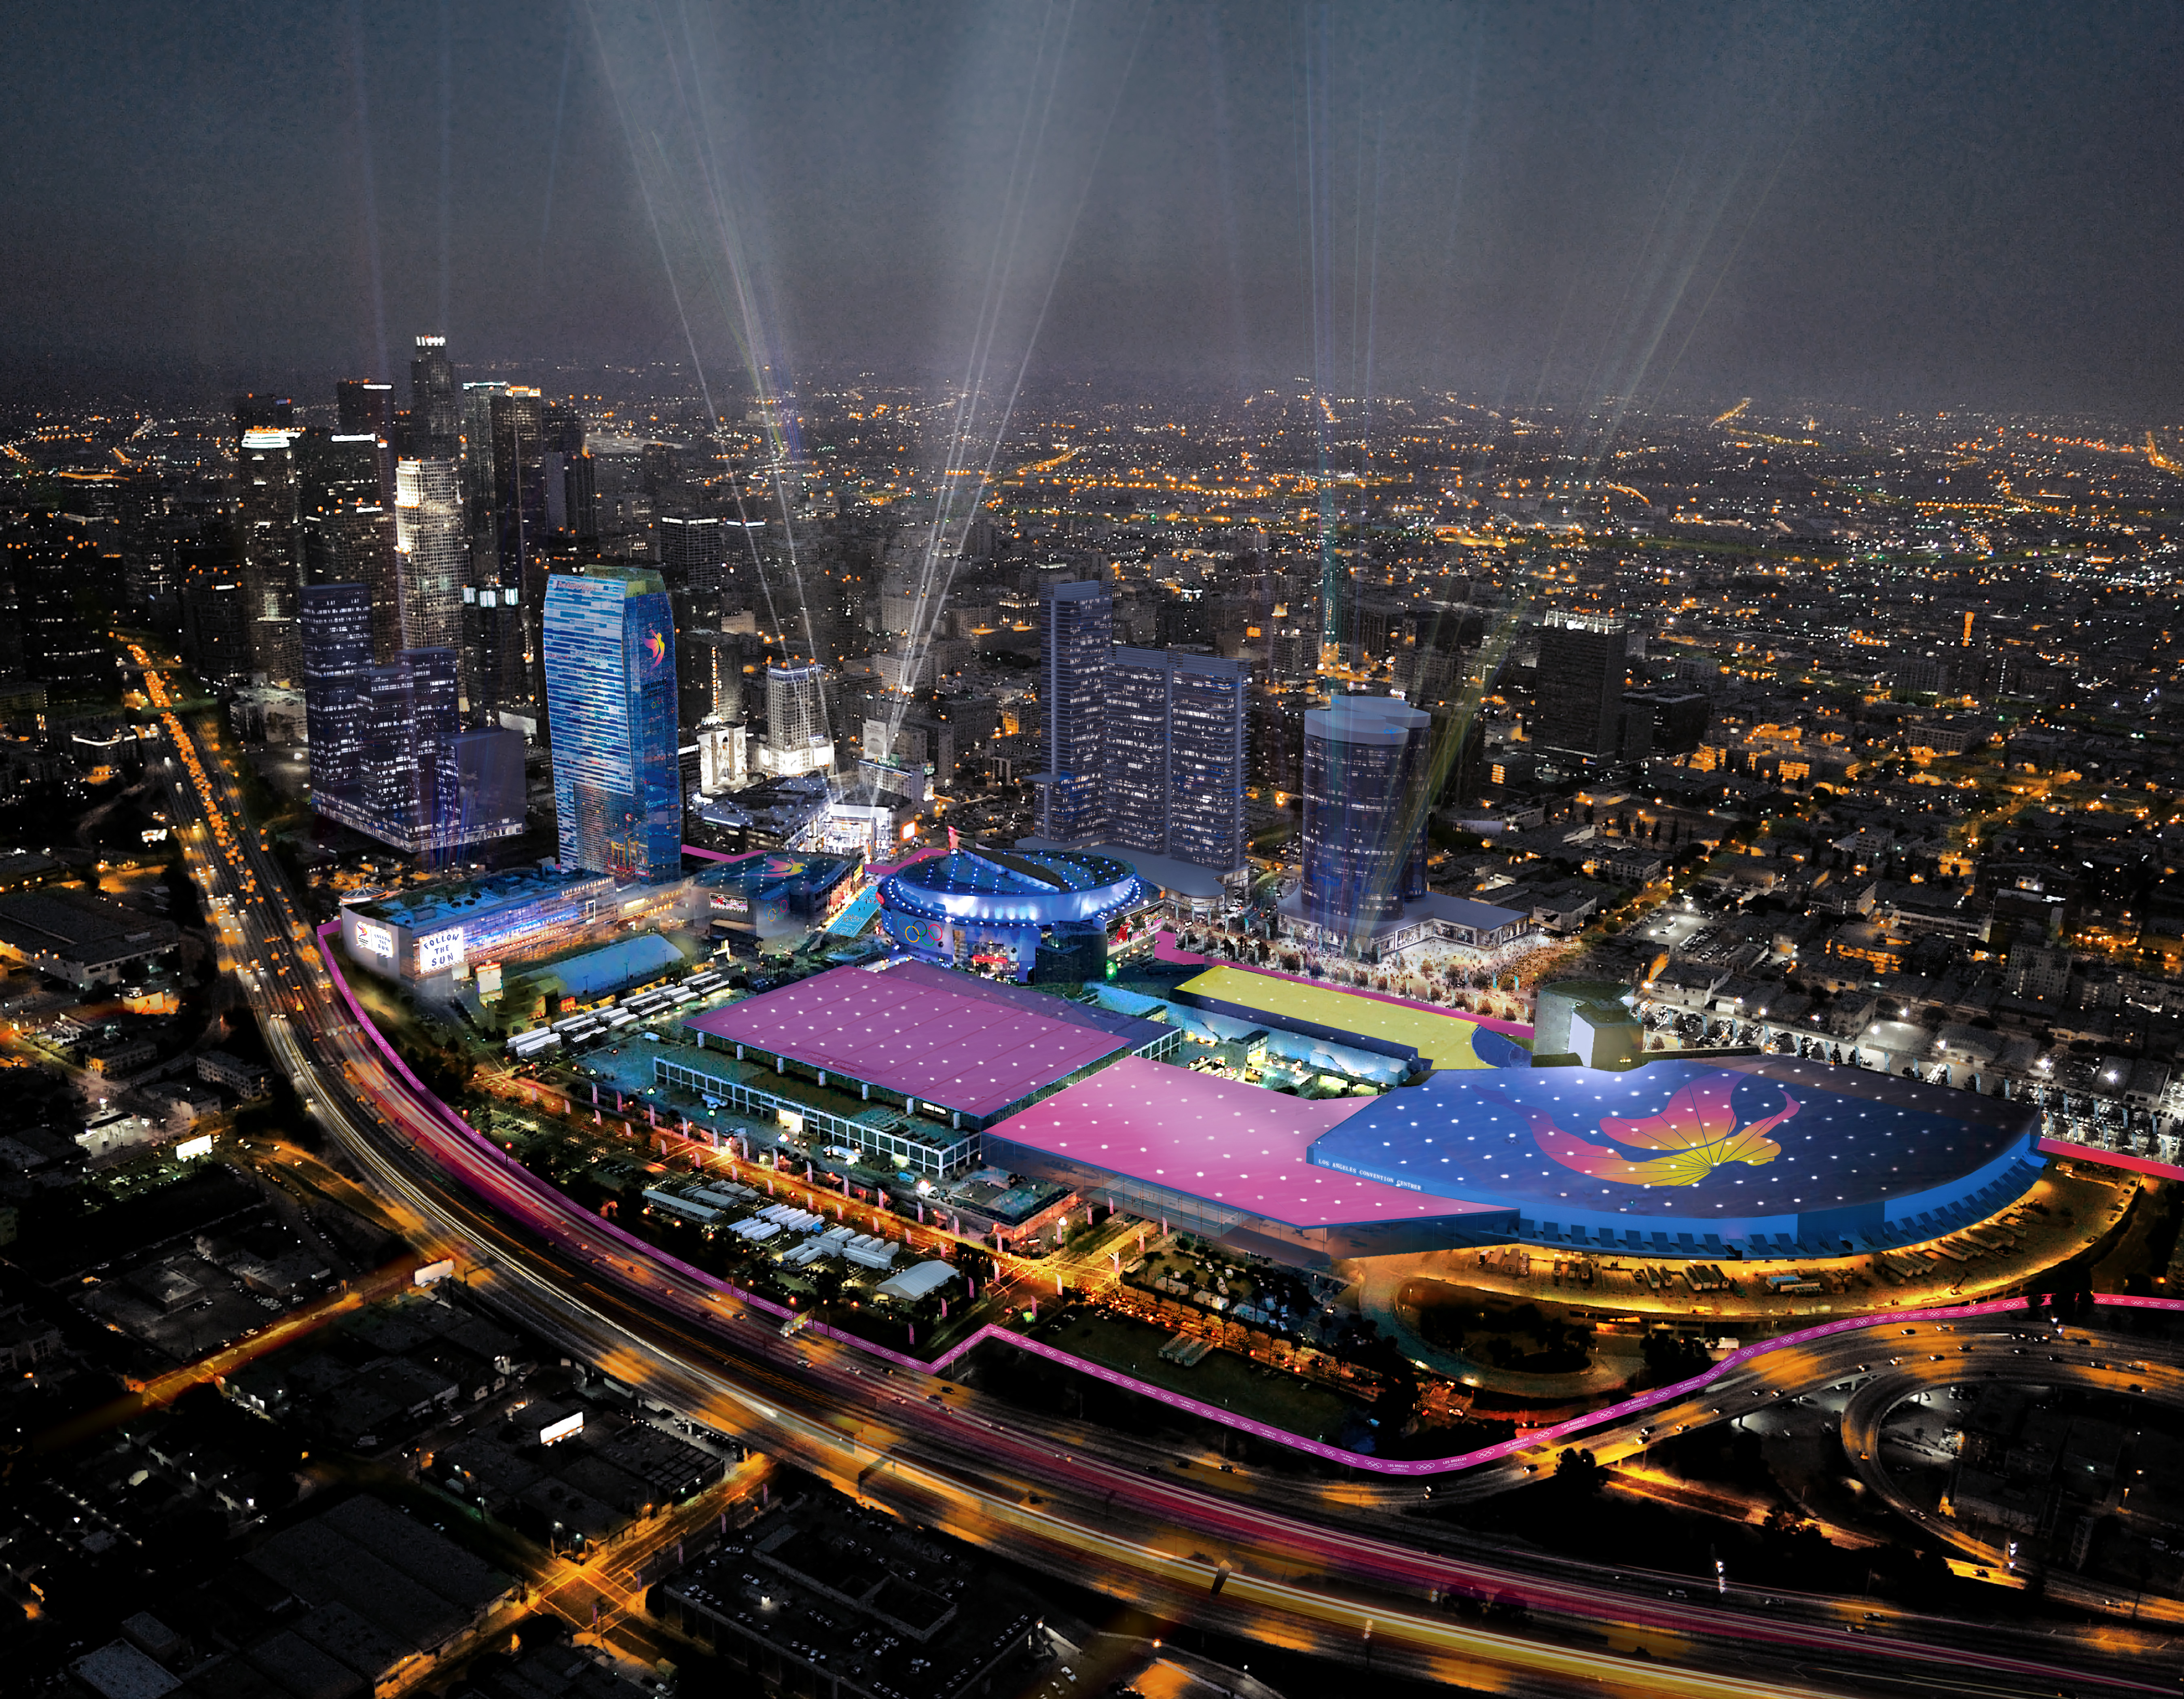 downtown-sports-park-rendering---la-live-aerial_33951519912_o